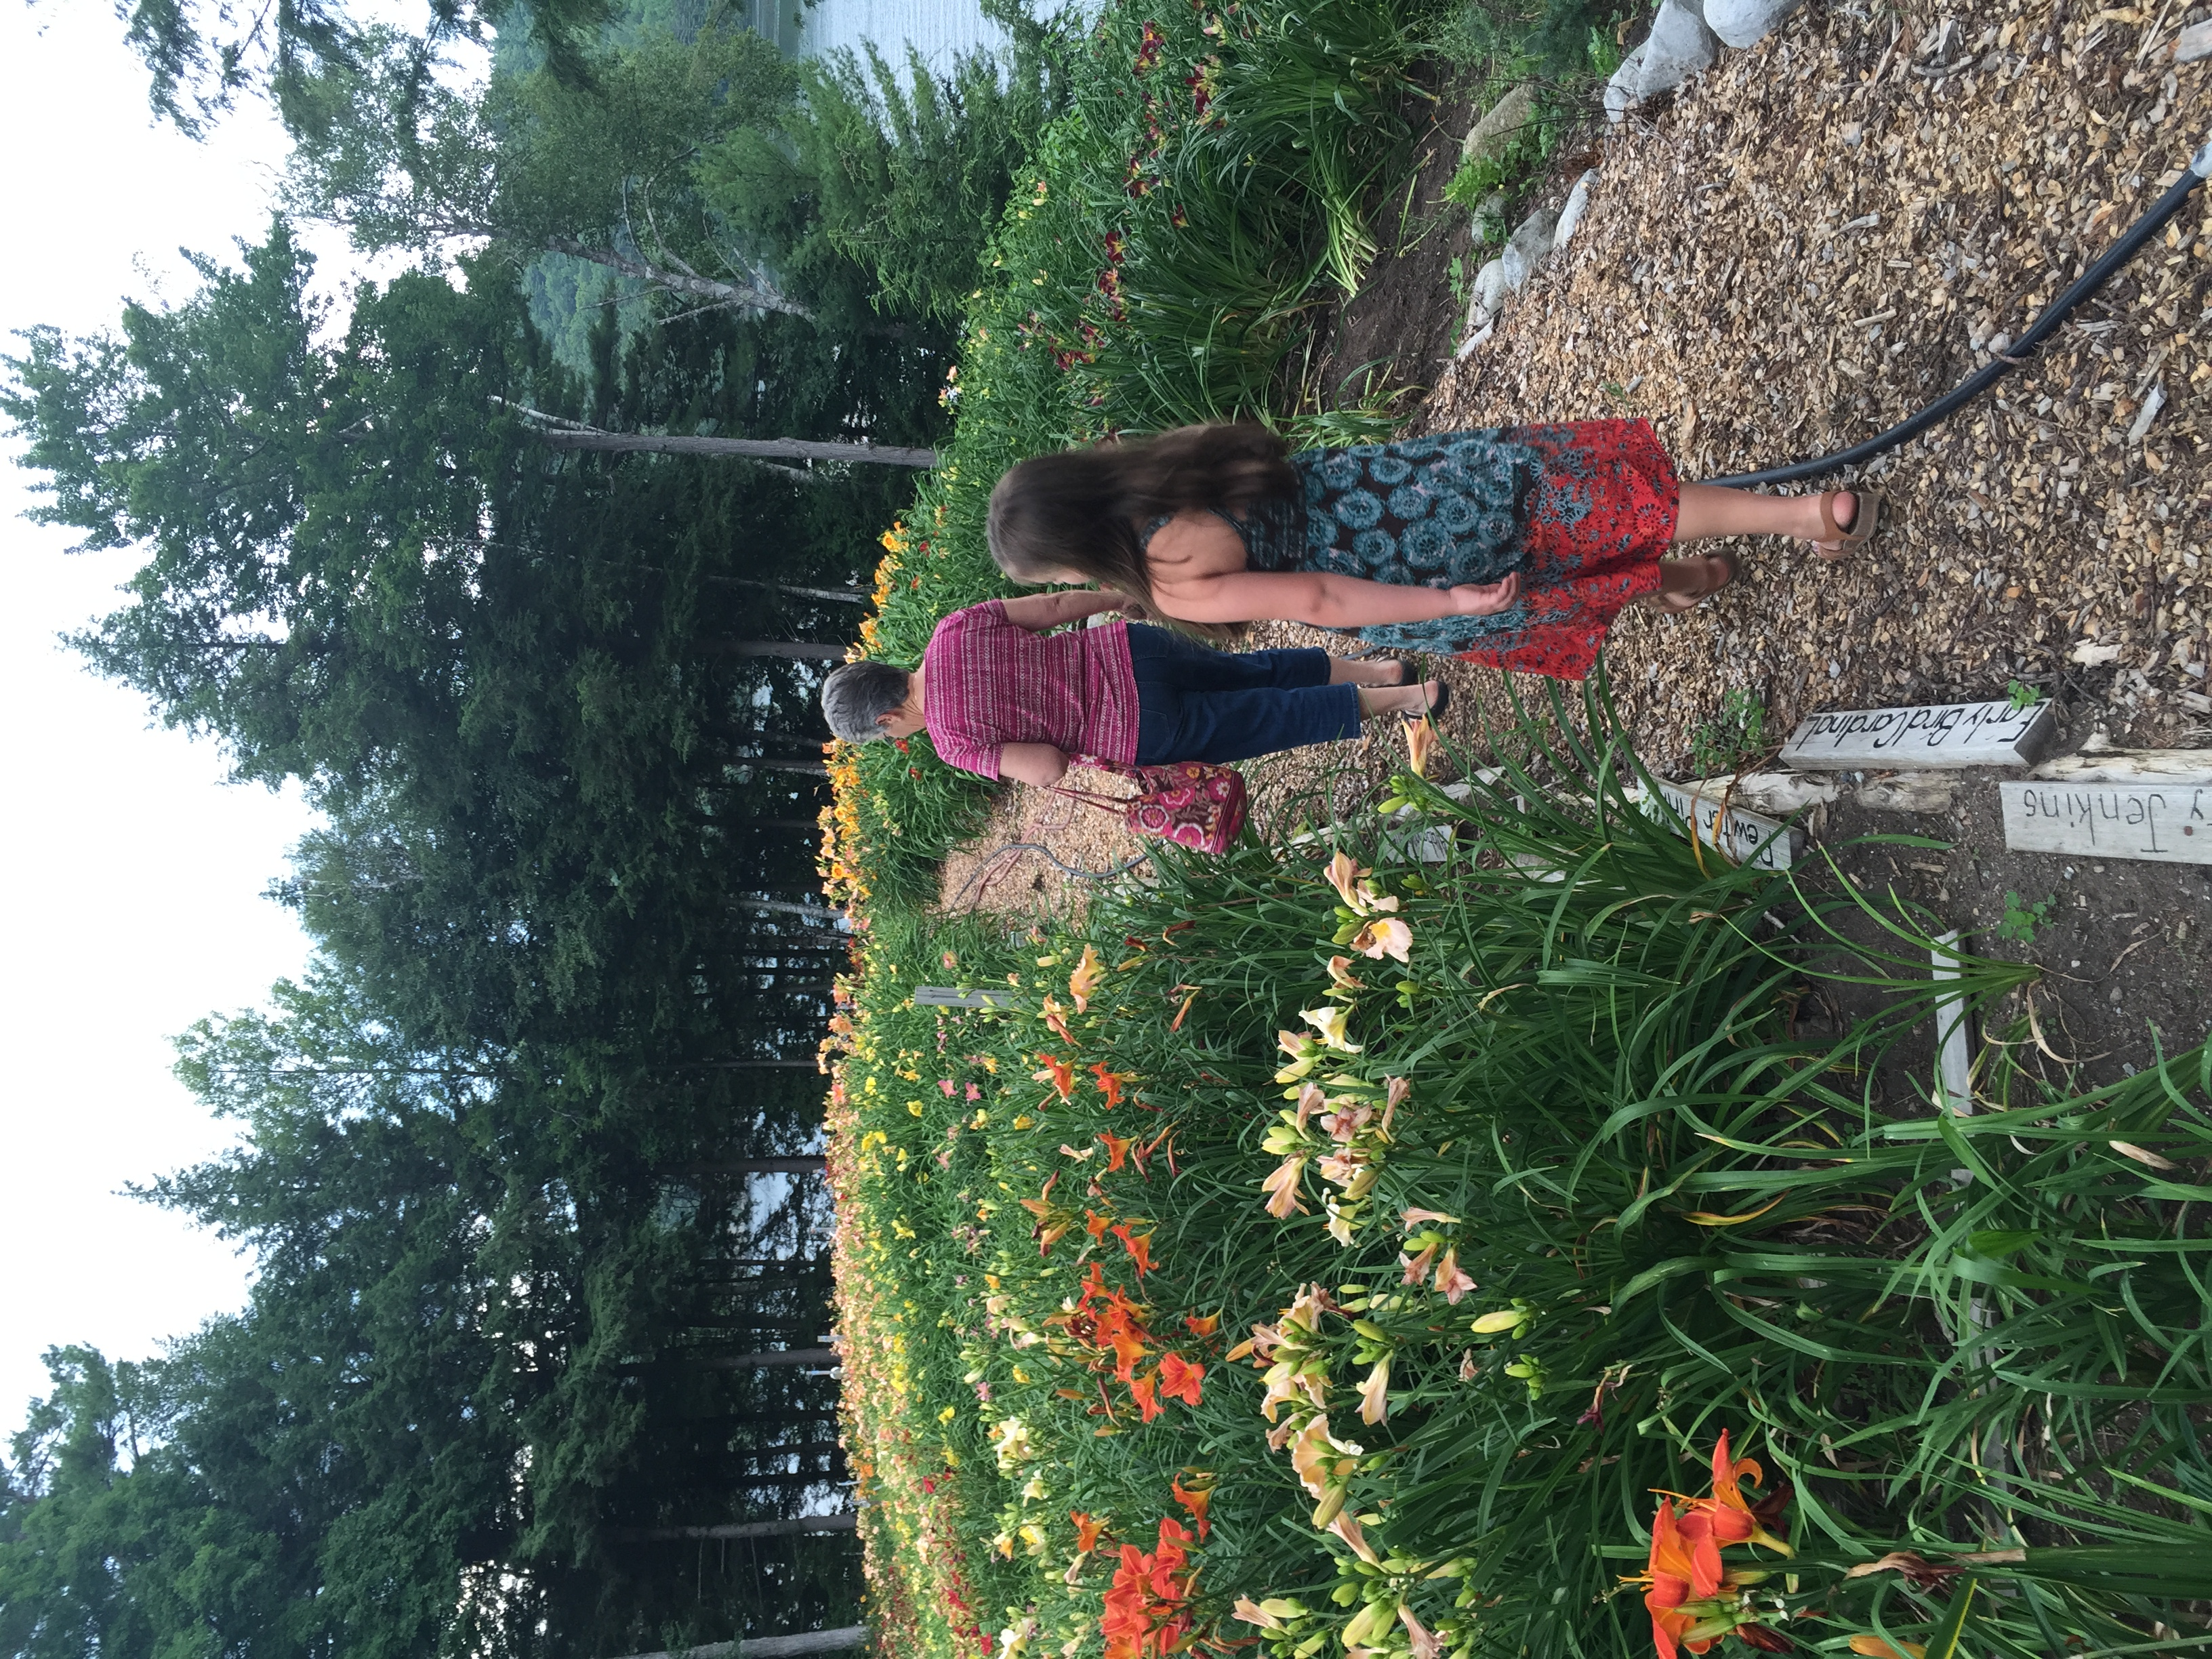 Kaia and Aunt Niki wandering the rows